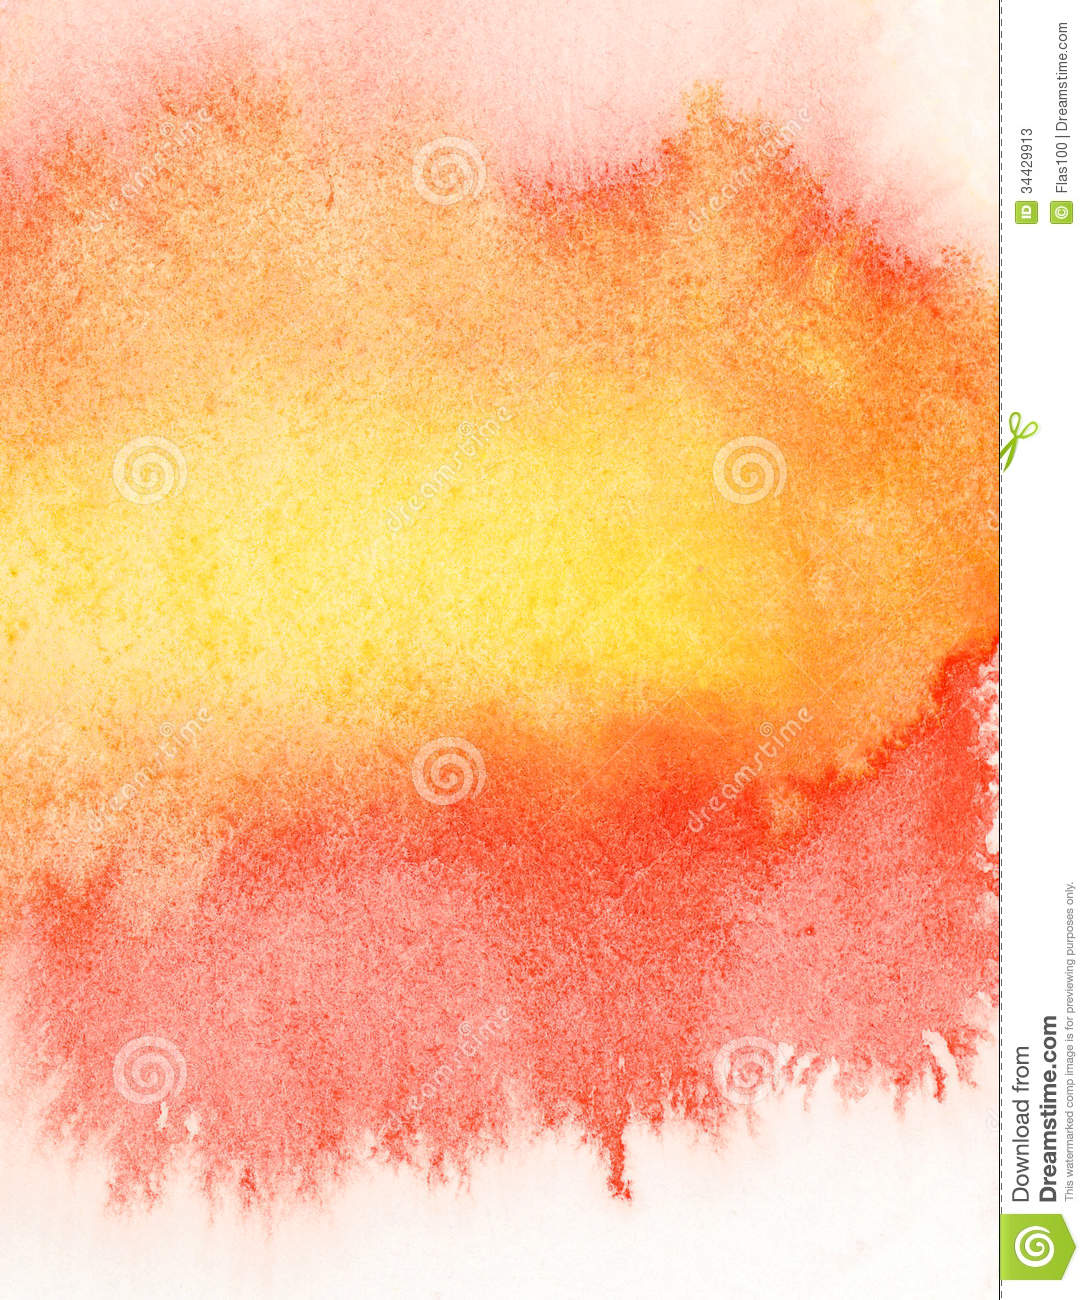 Watercolor splatter vector abstract watercolor background - Abstract Orange Watercolor Background Stock Photos Image